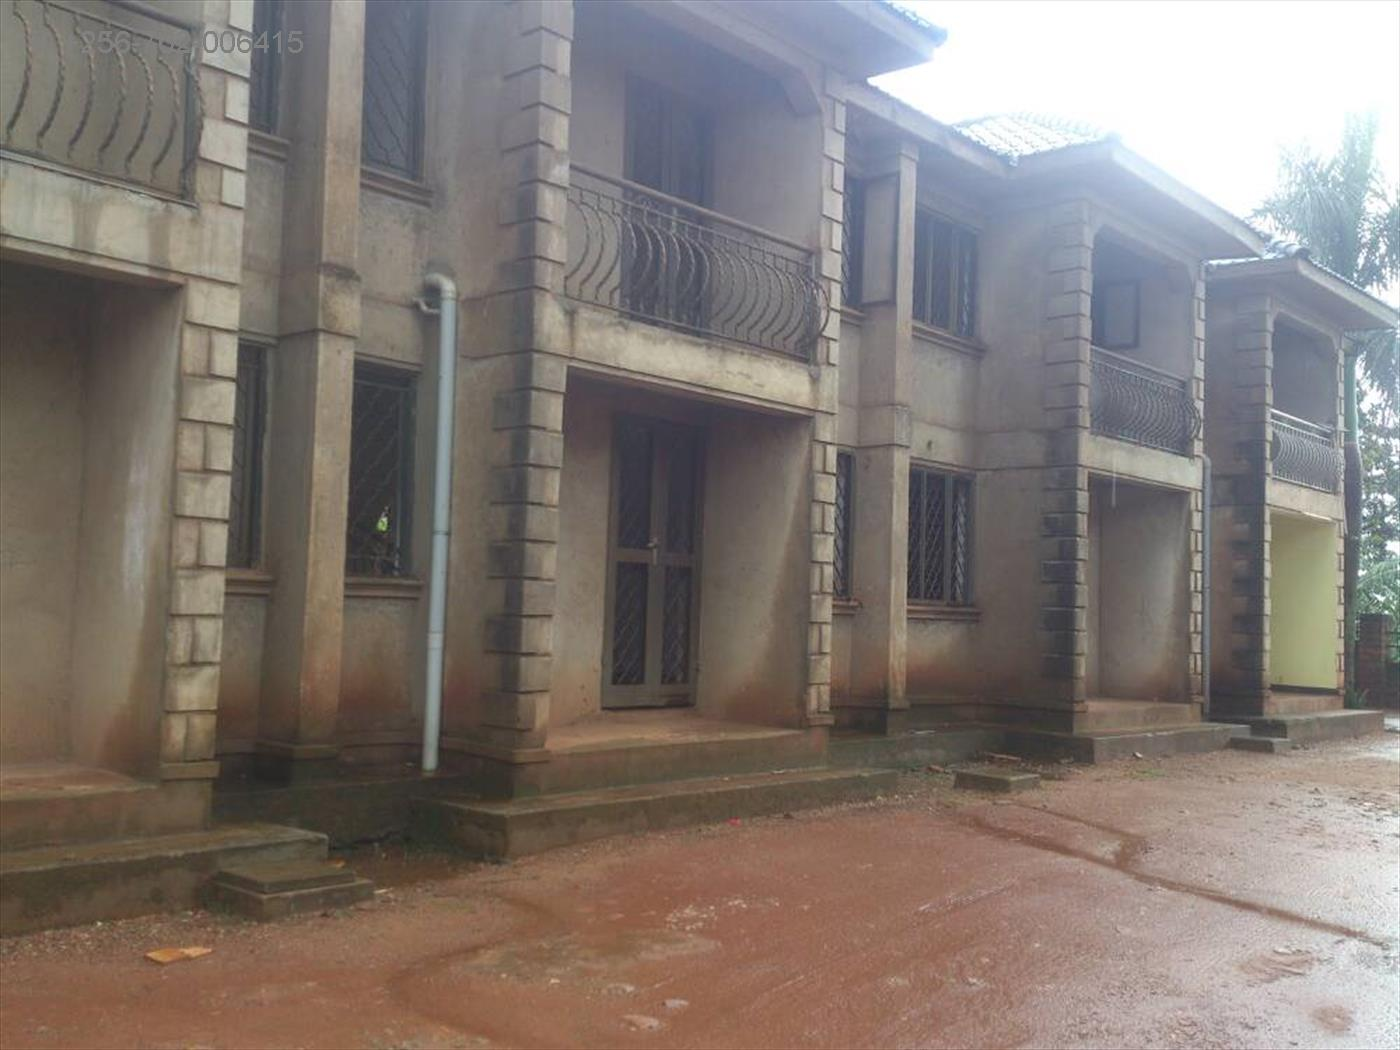 Apartment block for sale in Ntinda Kampala